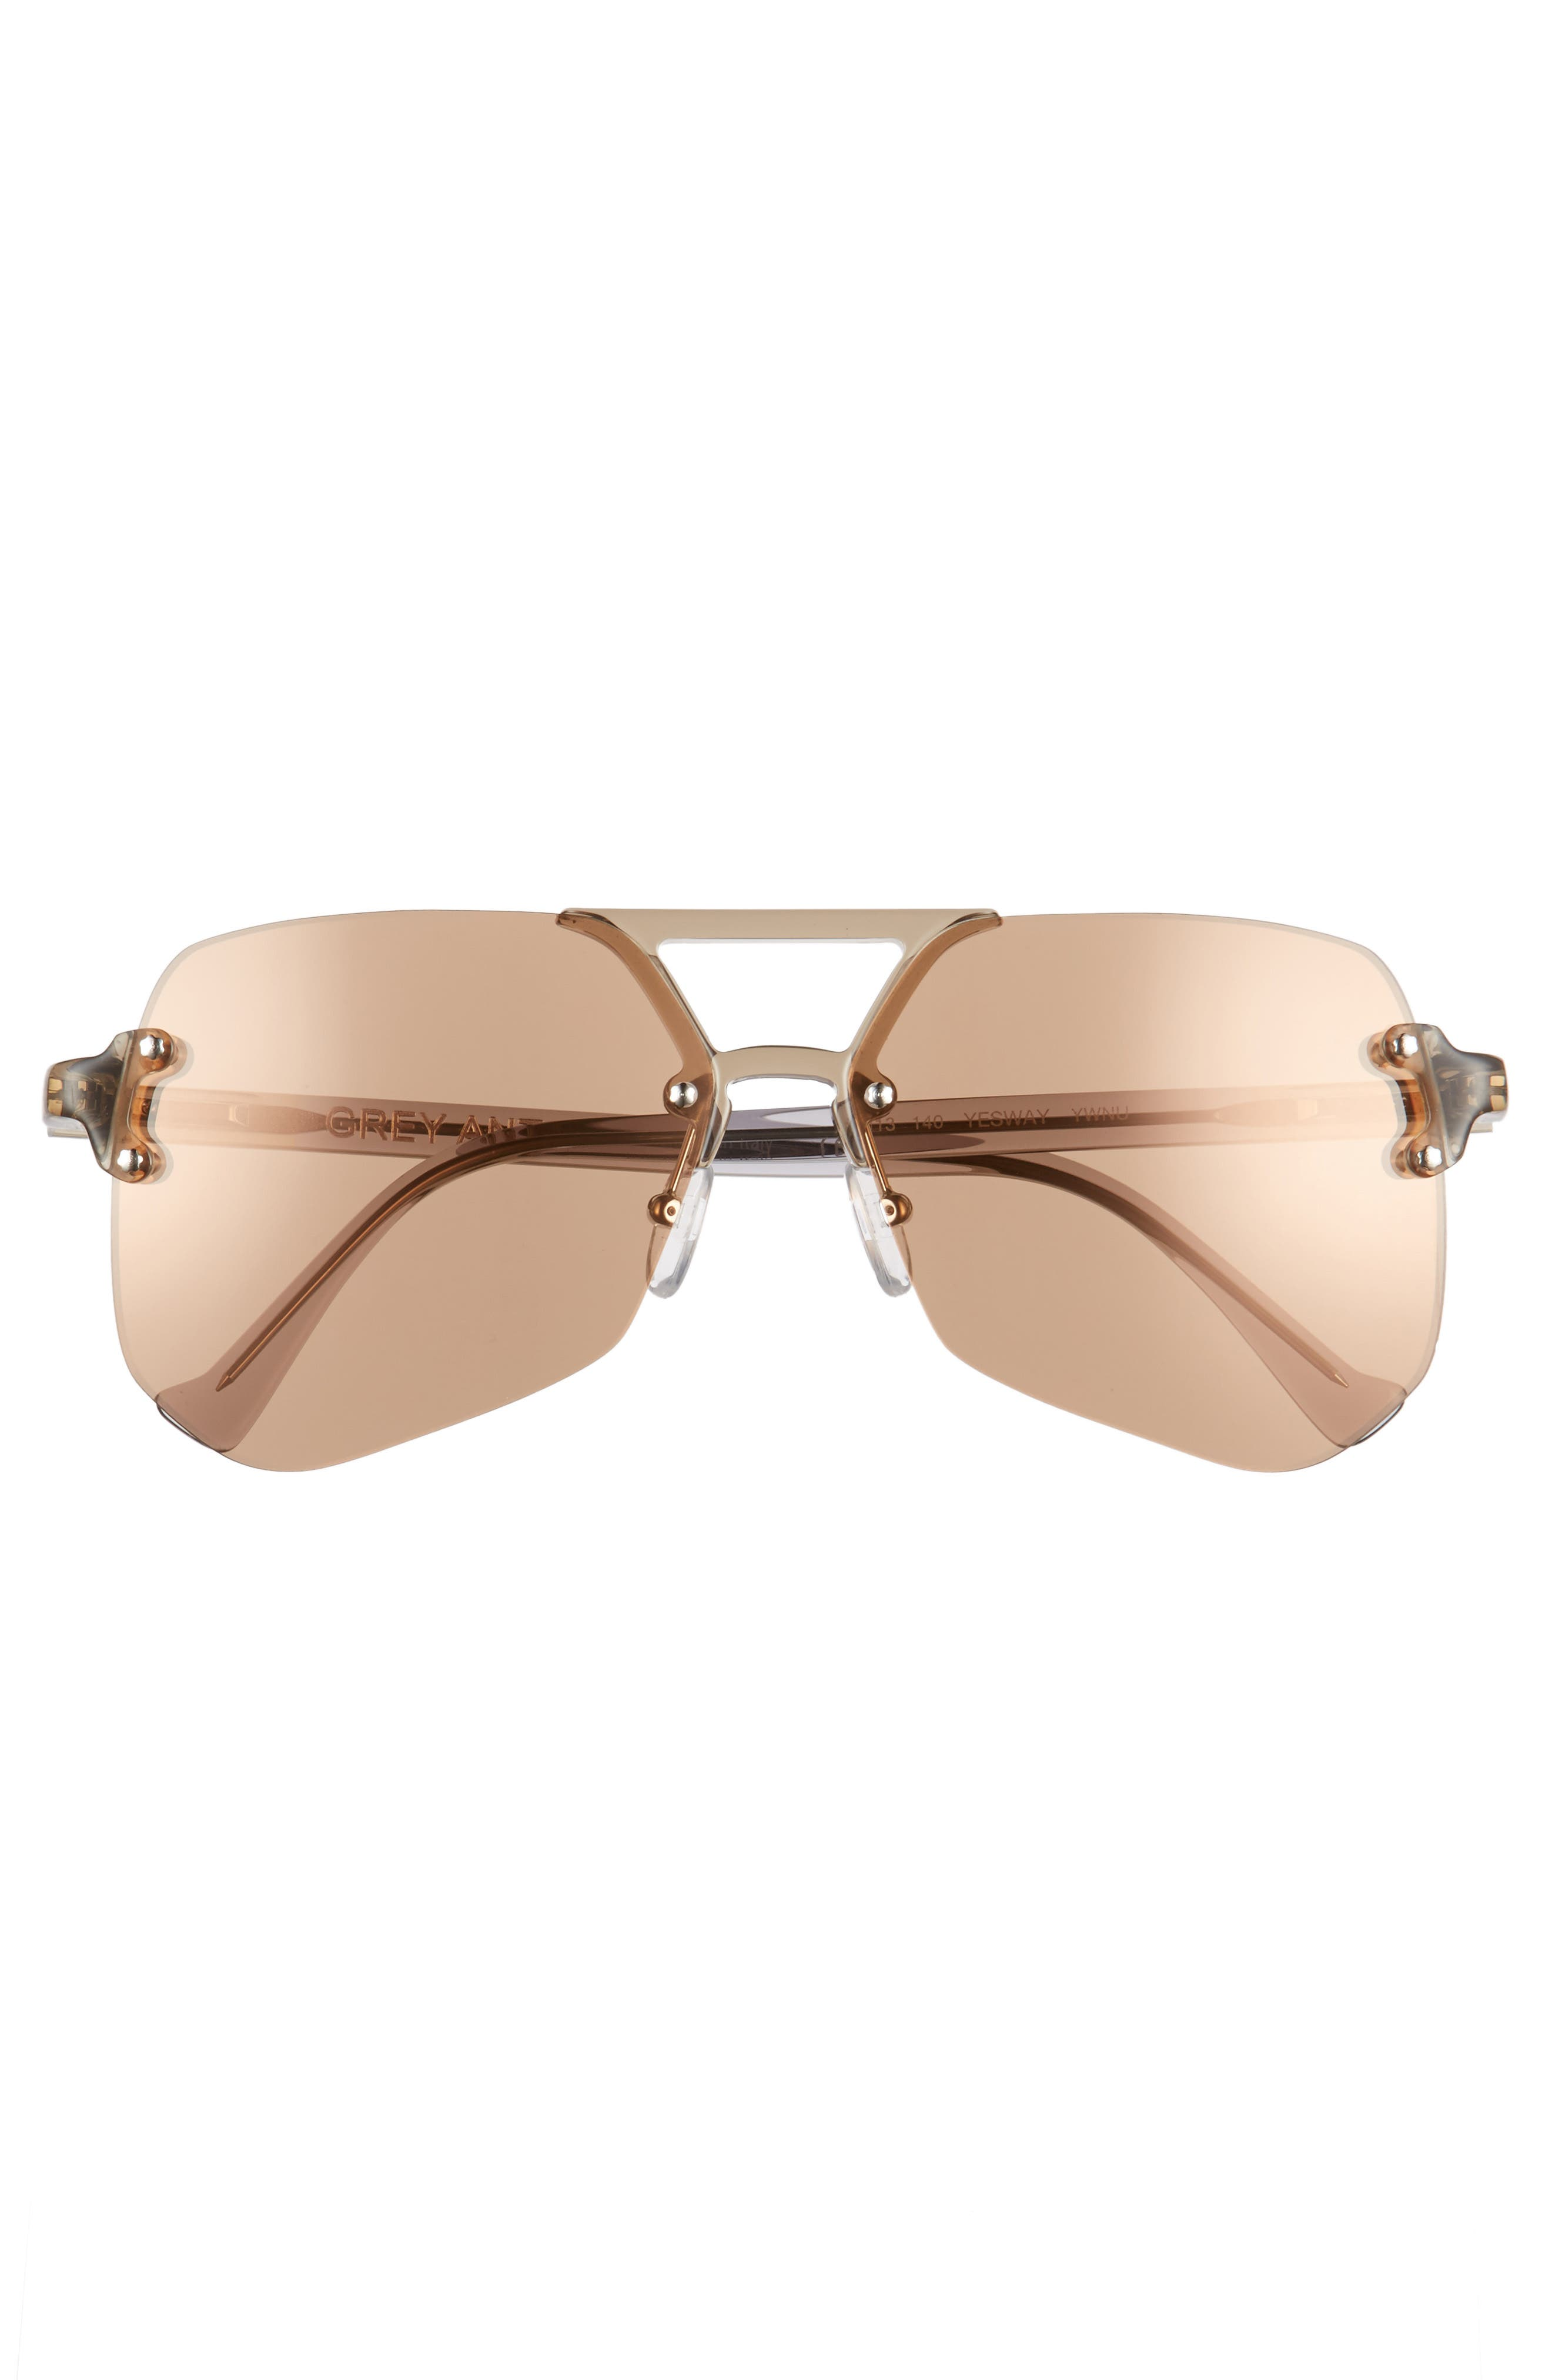 Yesway 60mm Sunglasses,                             Alternate thumbnail 3, color,                             BROWN LENS/ SILVER HARDWARE